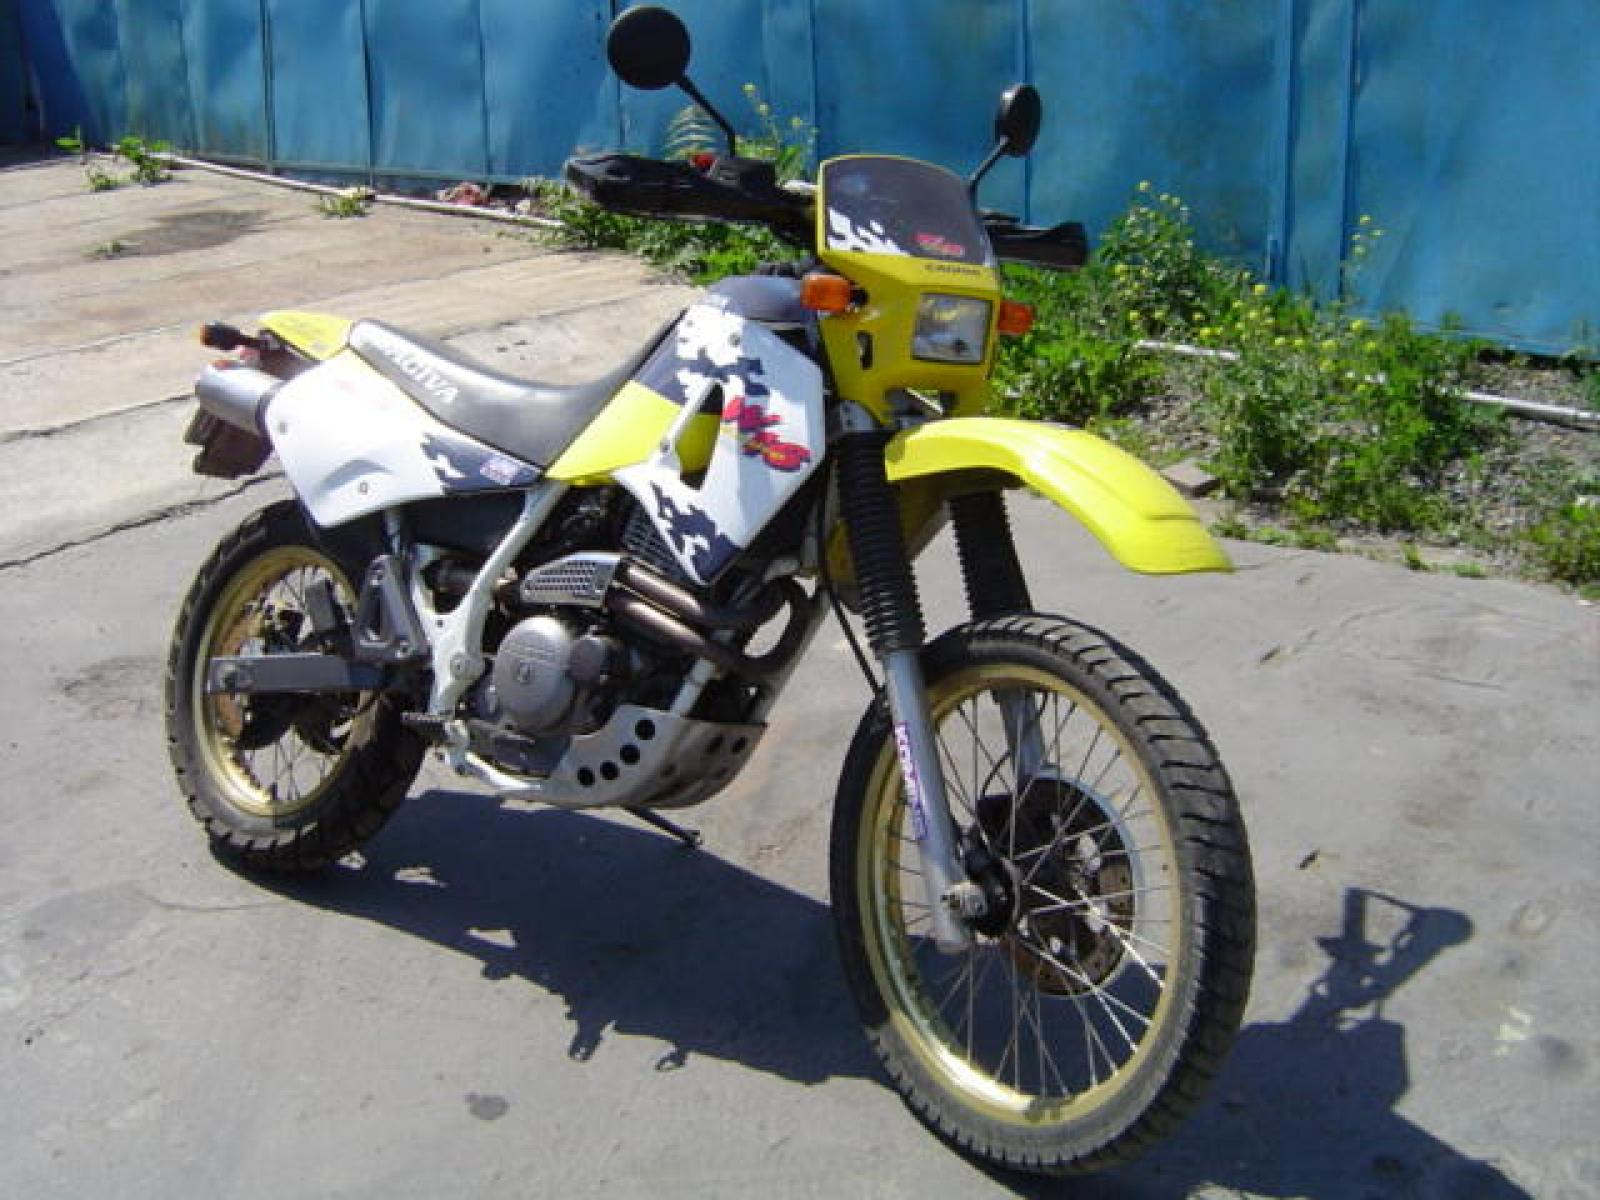 Cagiva 600 W 16 1996 images #67247